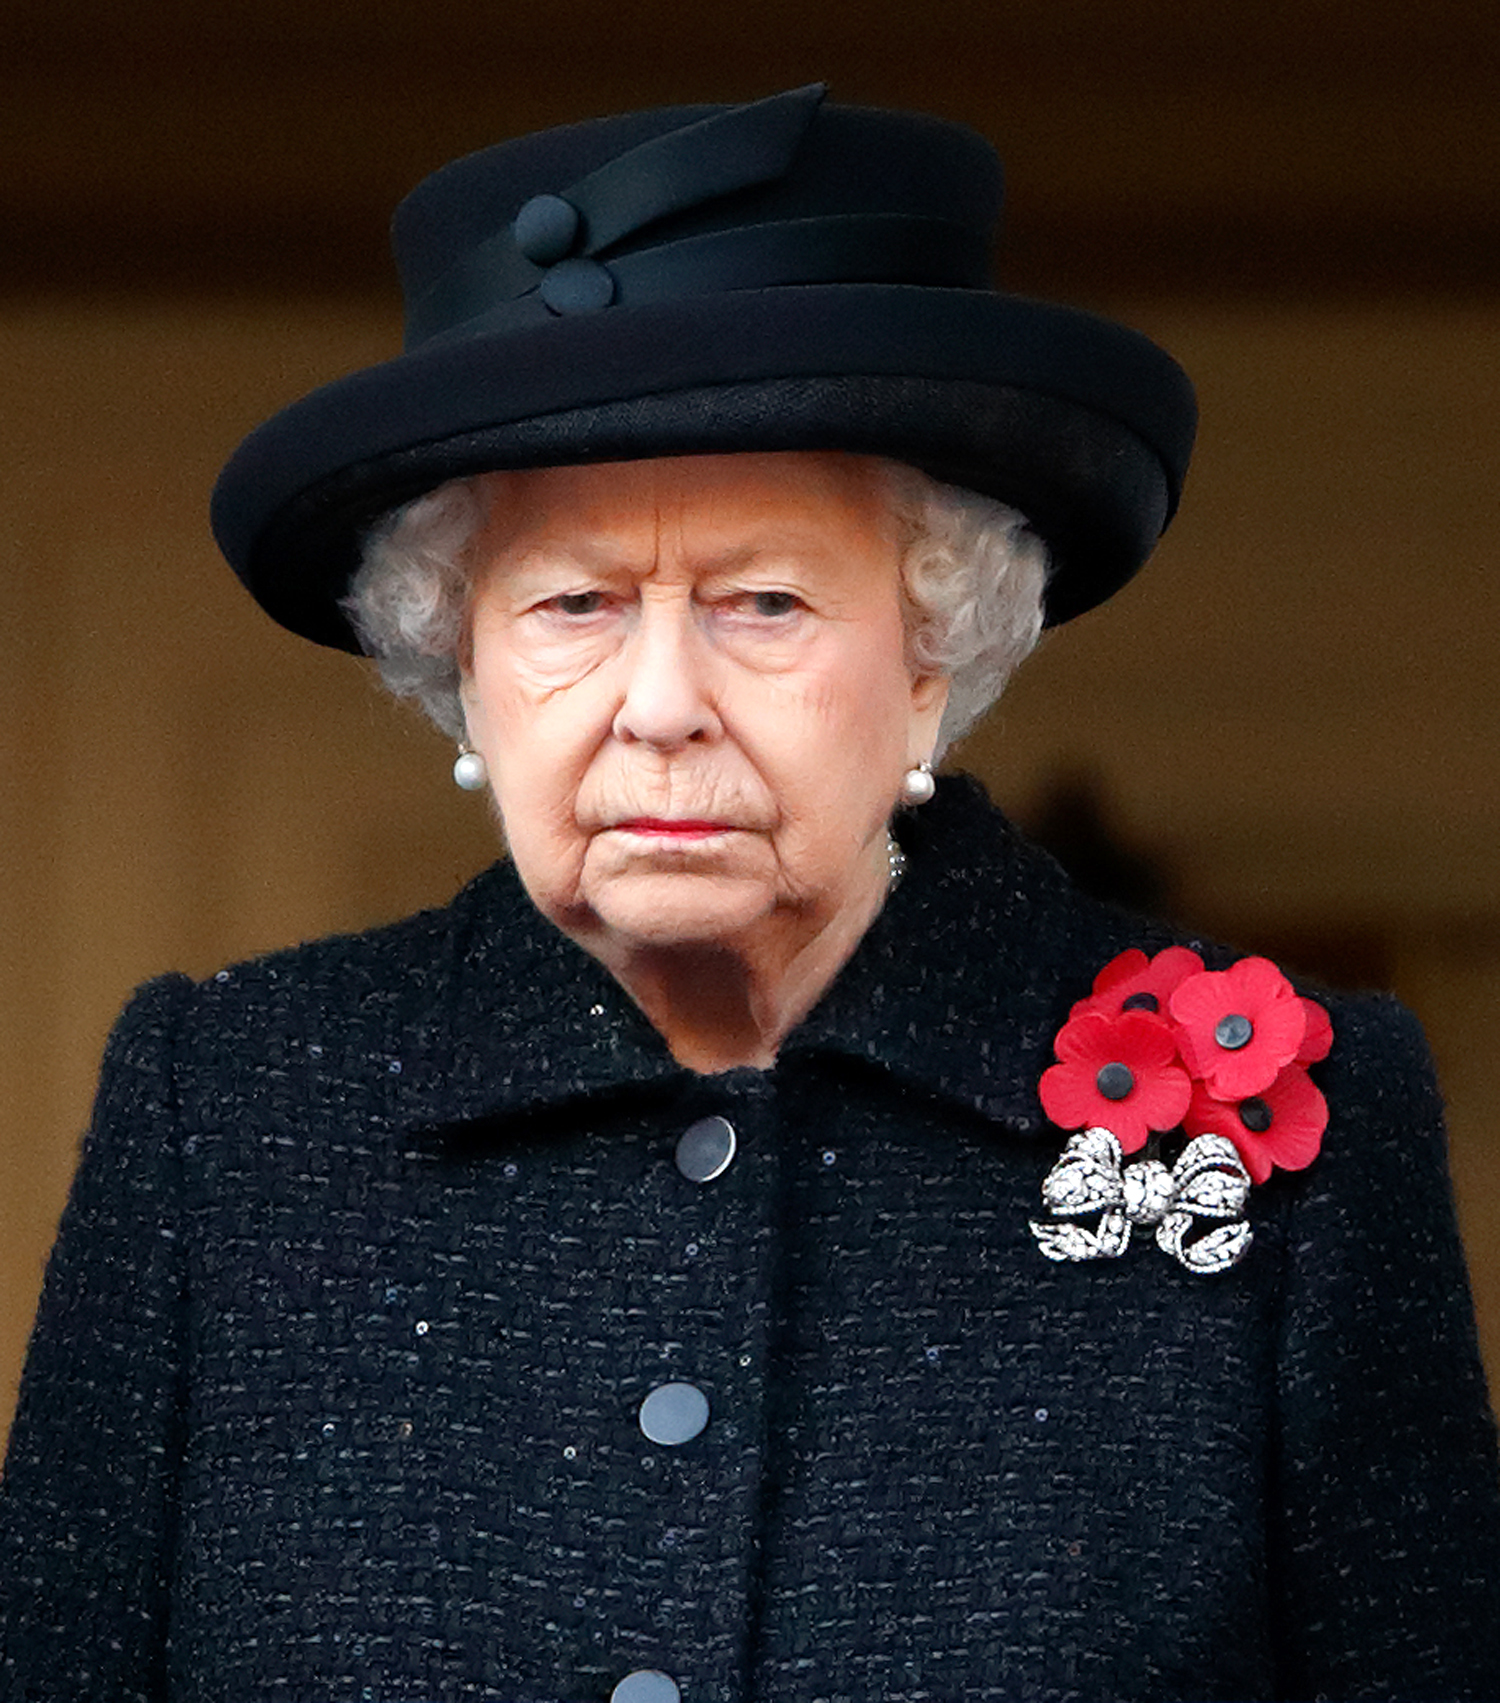 Queen Elizabeth II attends the annual Remembrance Sunday service at The Cenotaph